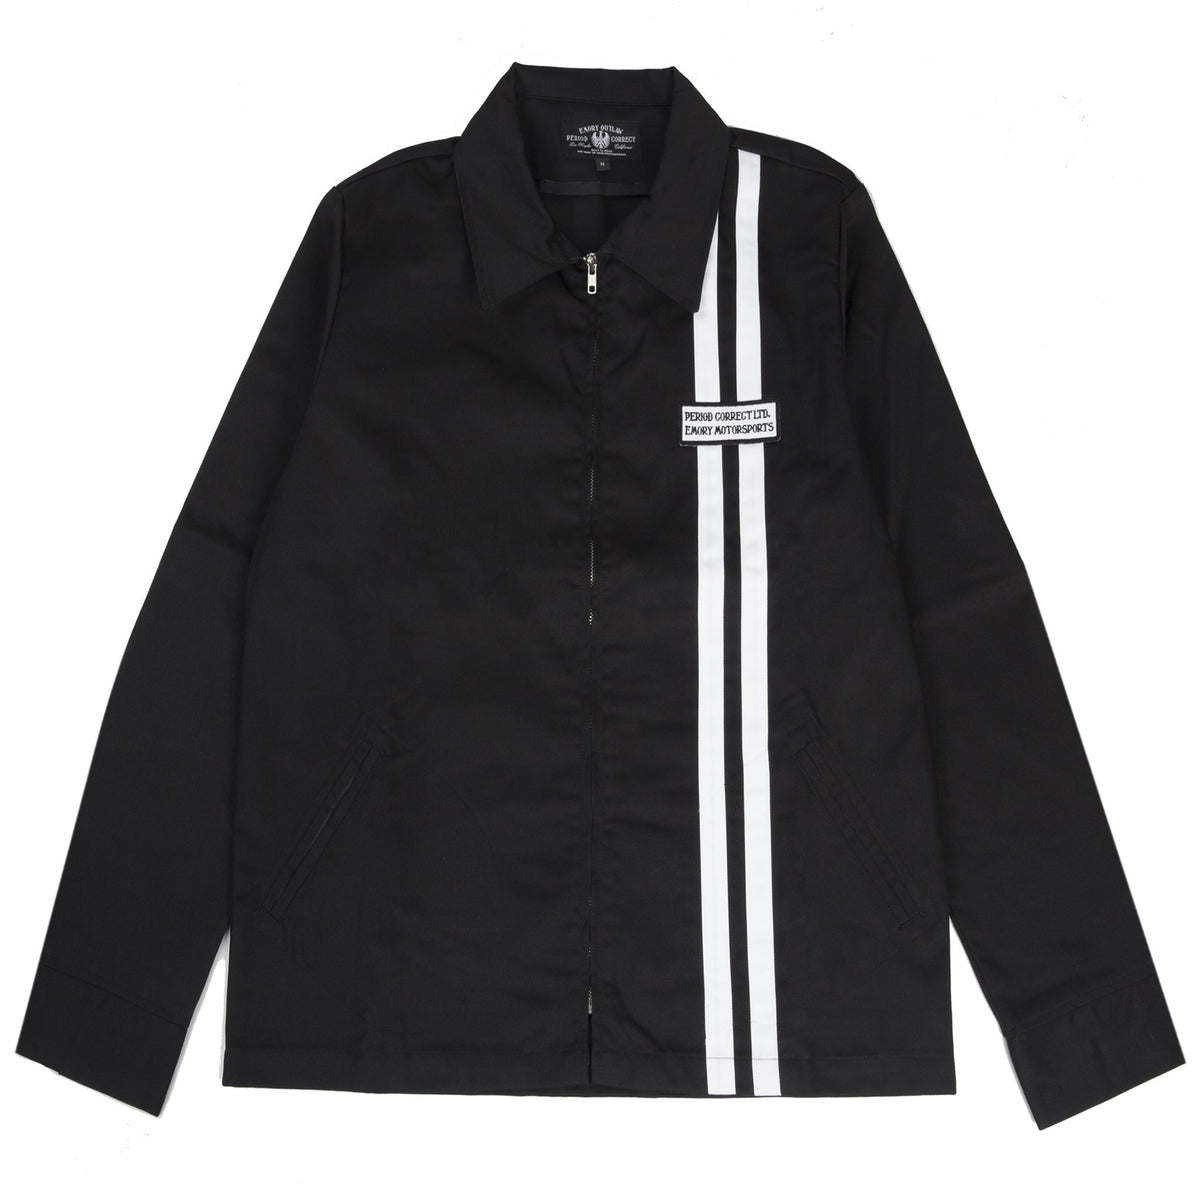 EMORY WERKSHOP JACKET